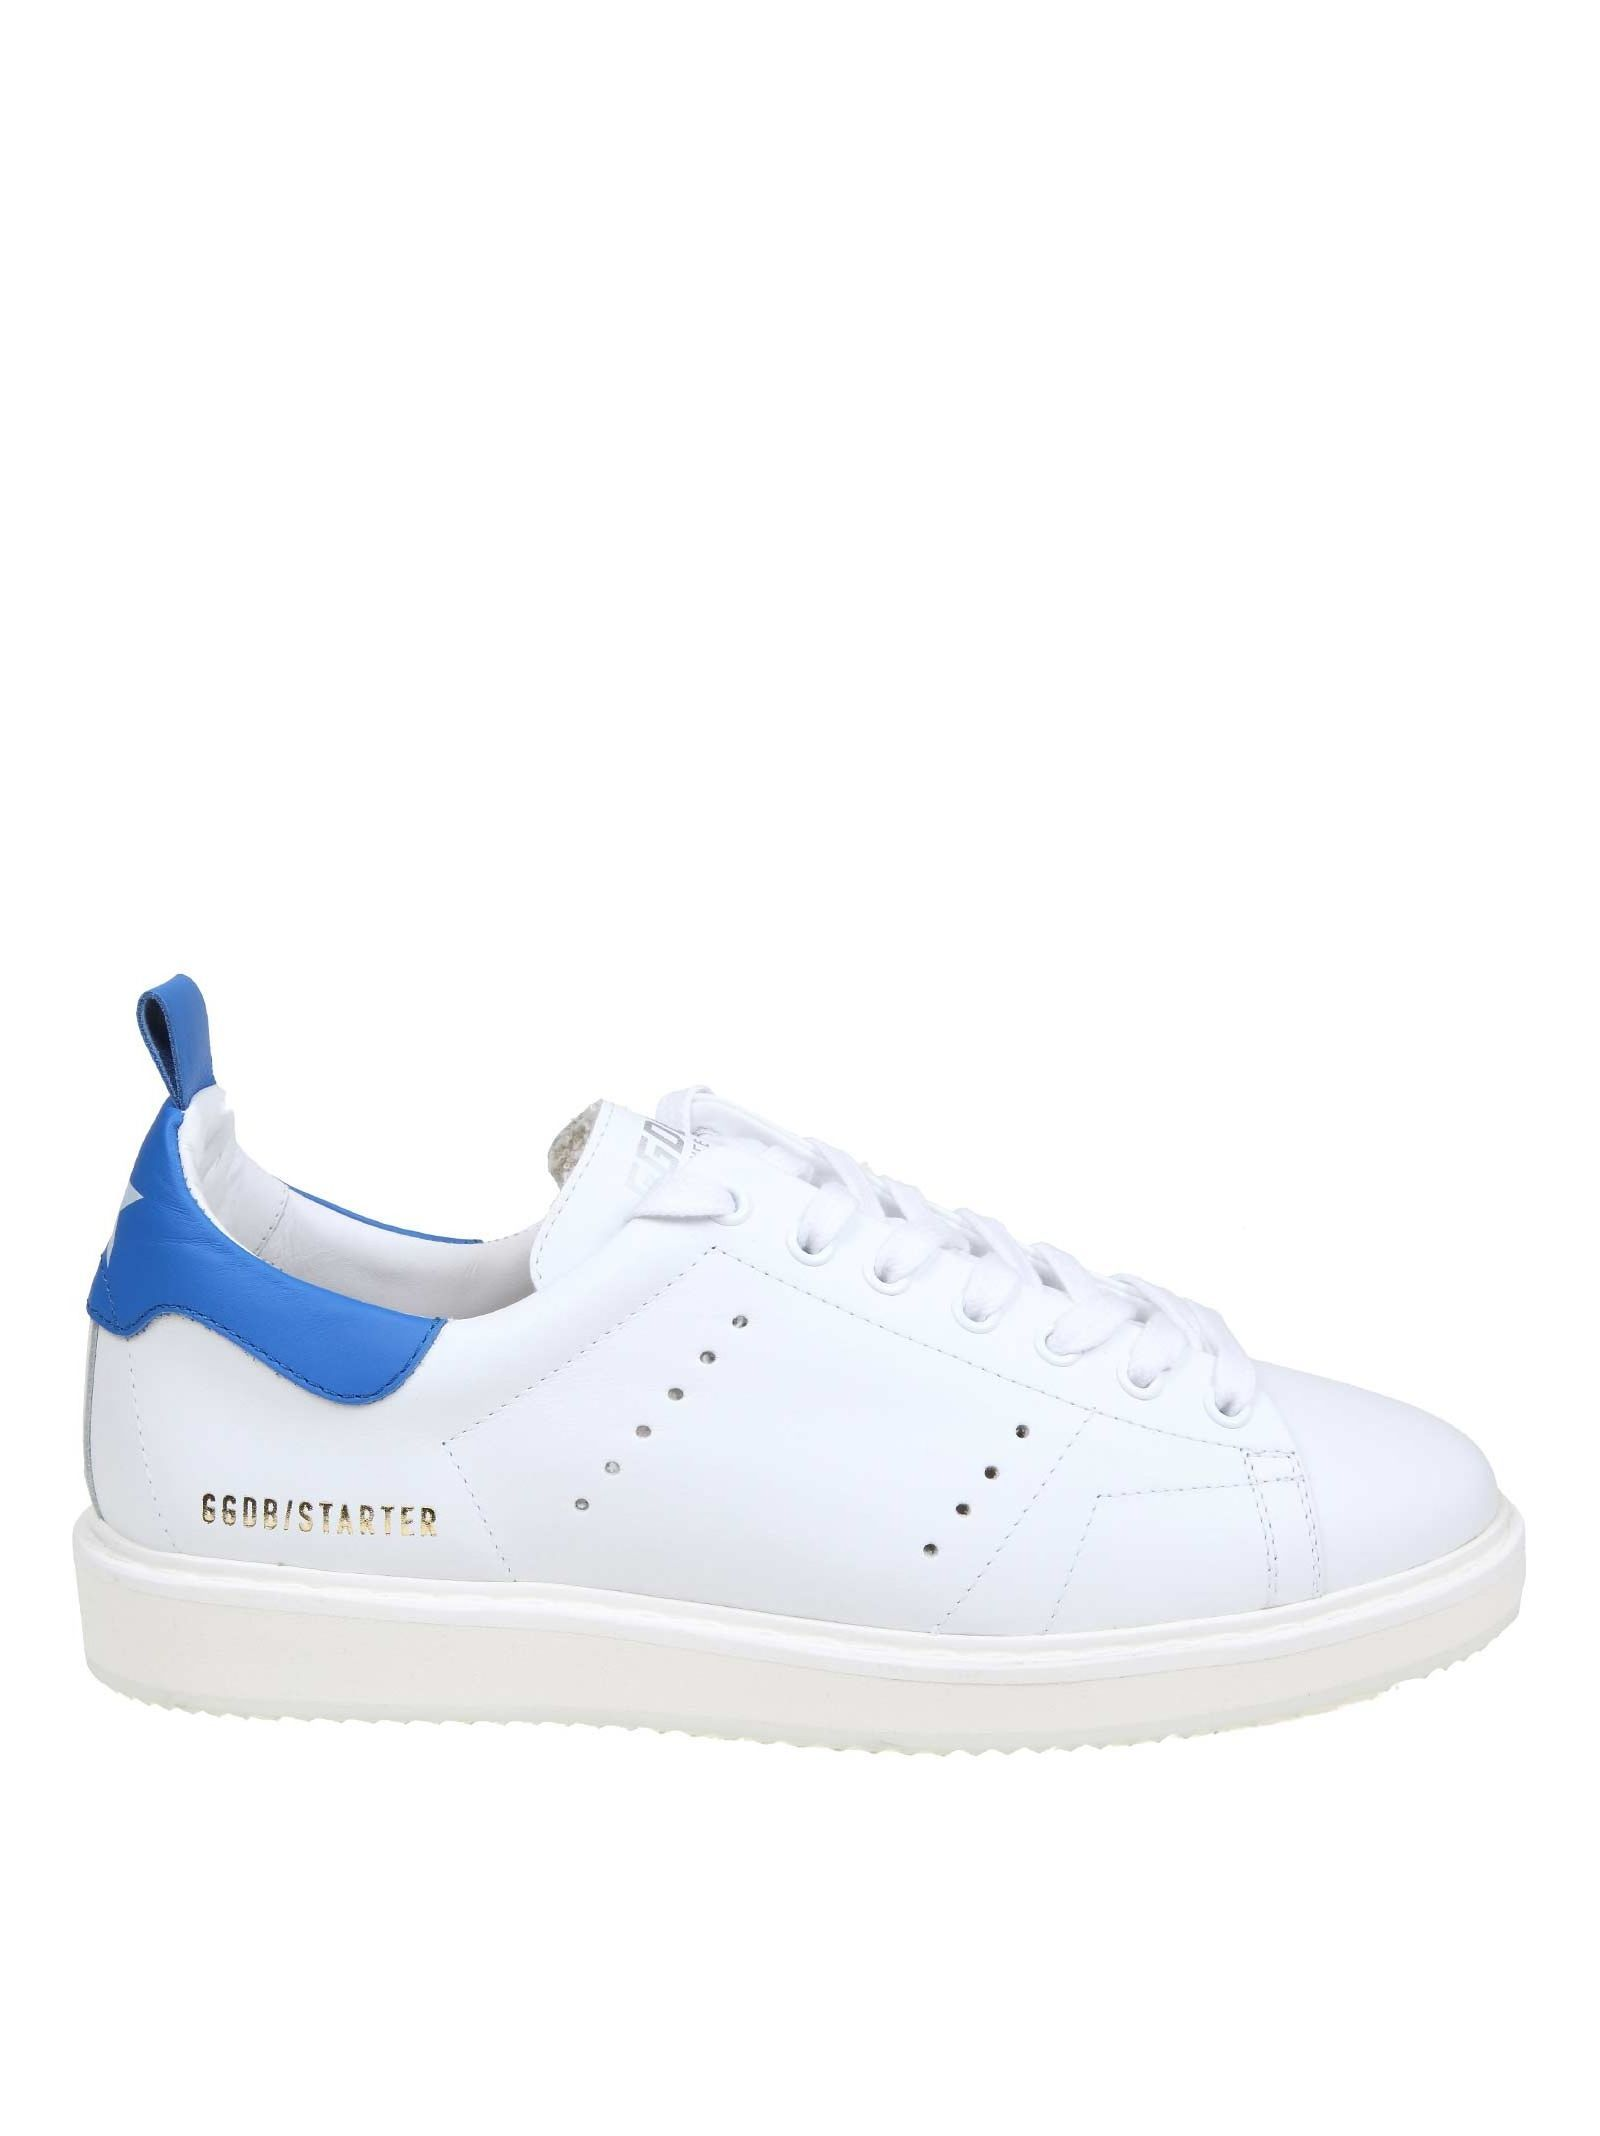 83c41caee4 GOLDEN GOOSE SNEAKERS STARTER SHARK IN WHITE LEATHER. #goldengoose ...